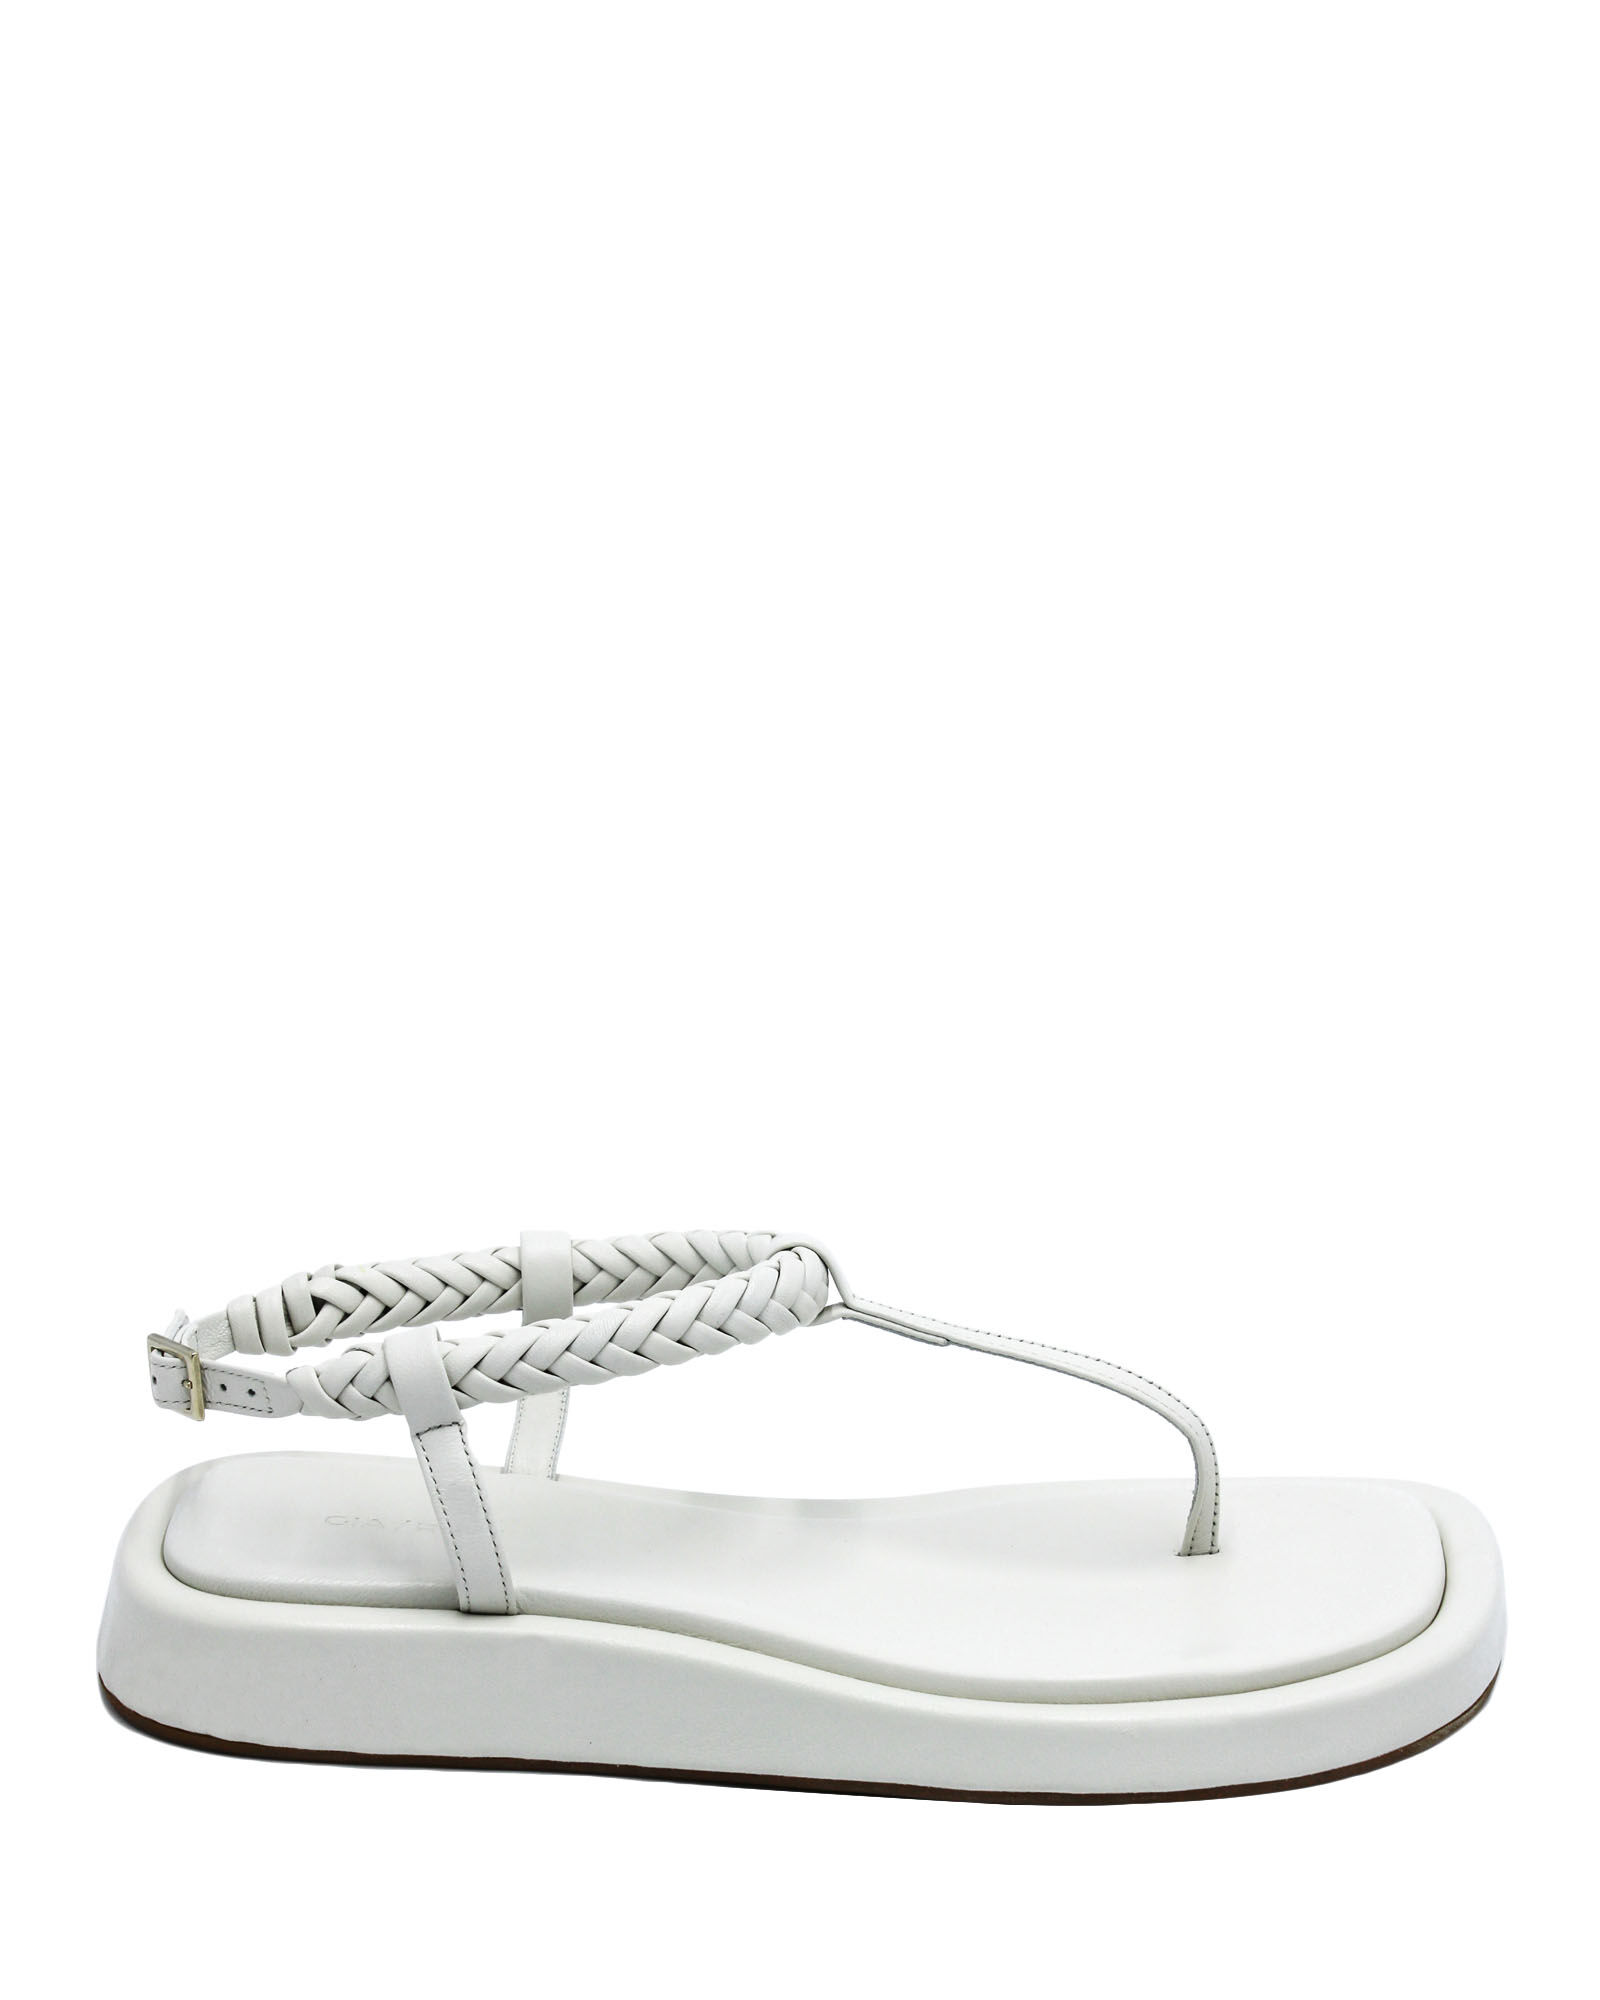 x RHW 3 Leather Thong Sandals, WHITE, hi-res